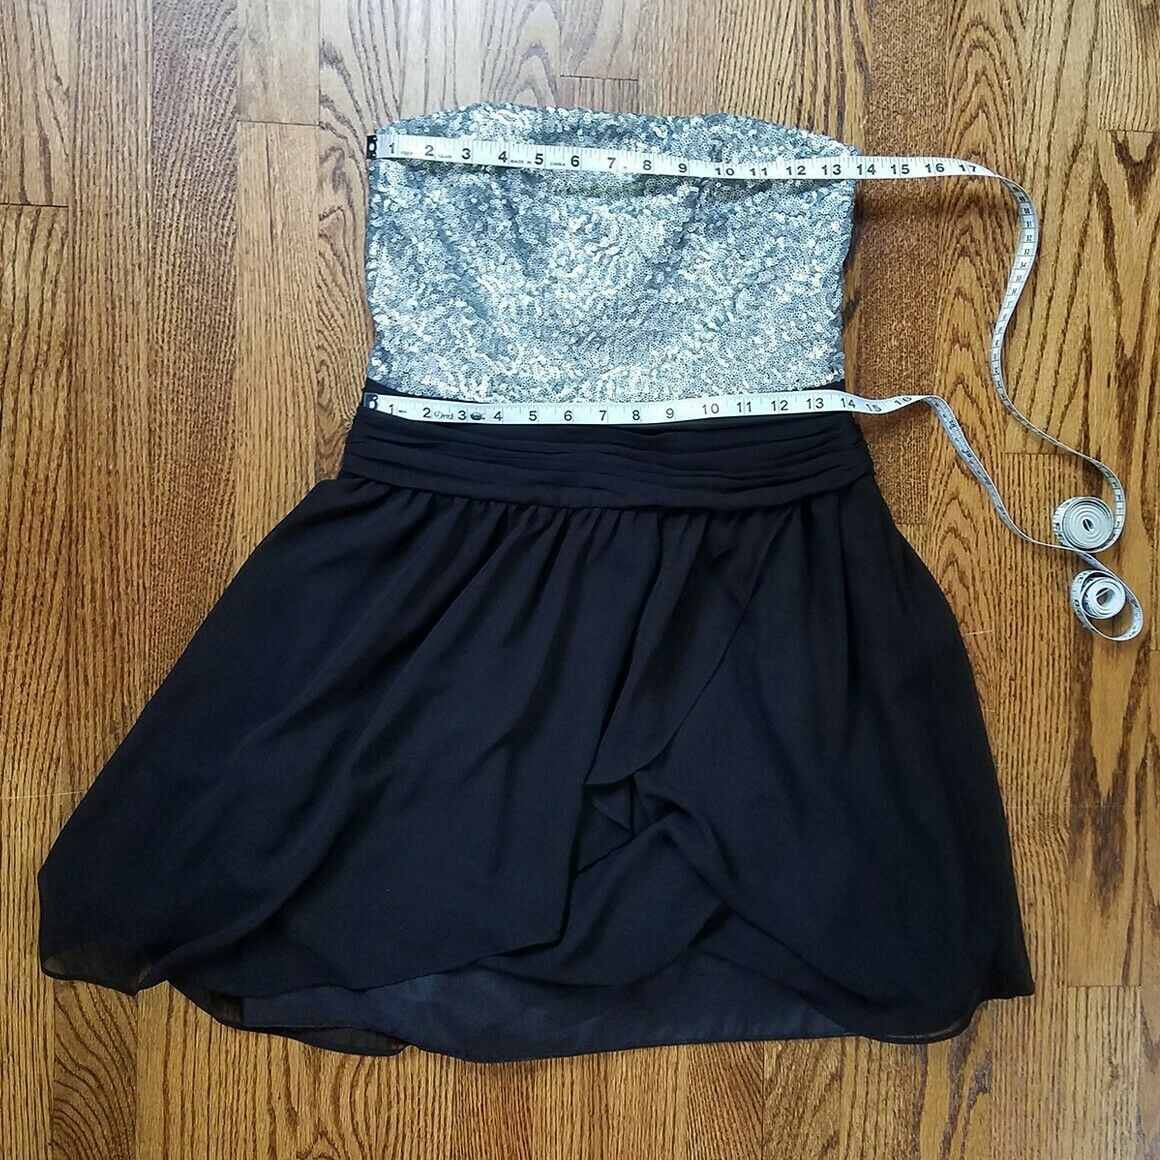 Express Silver & Black Sequin Strapless Cocktail Dress Size 6 image 6